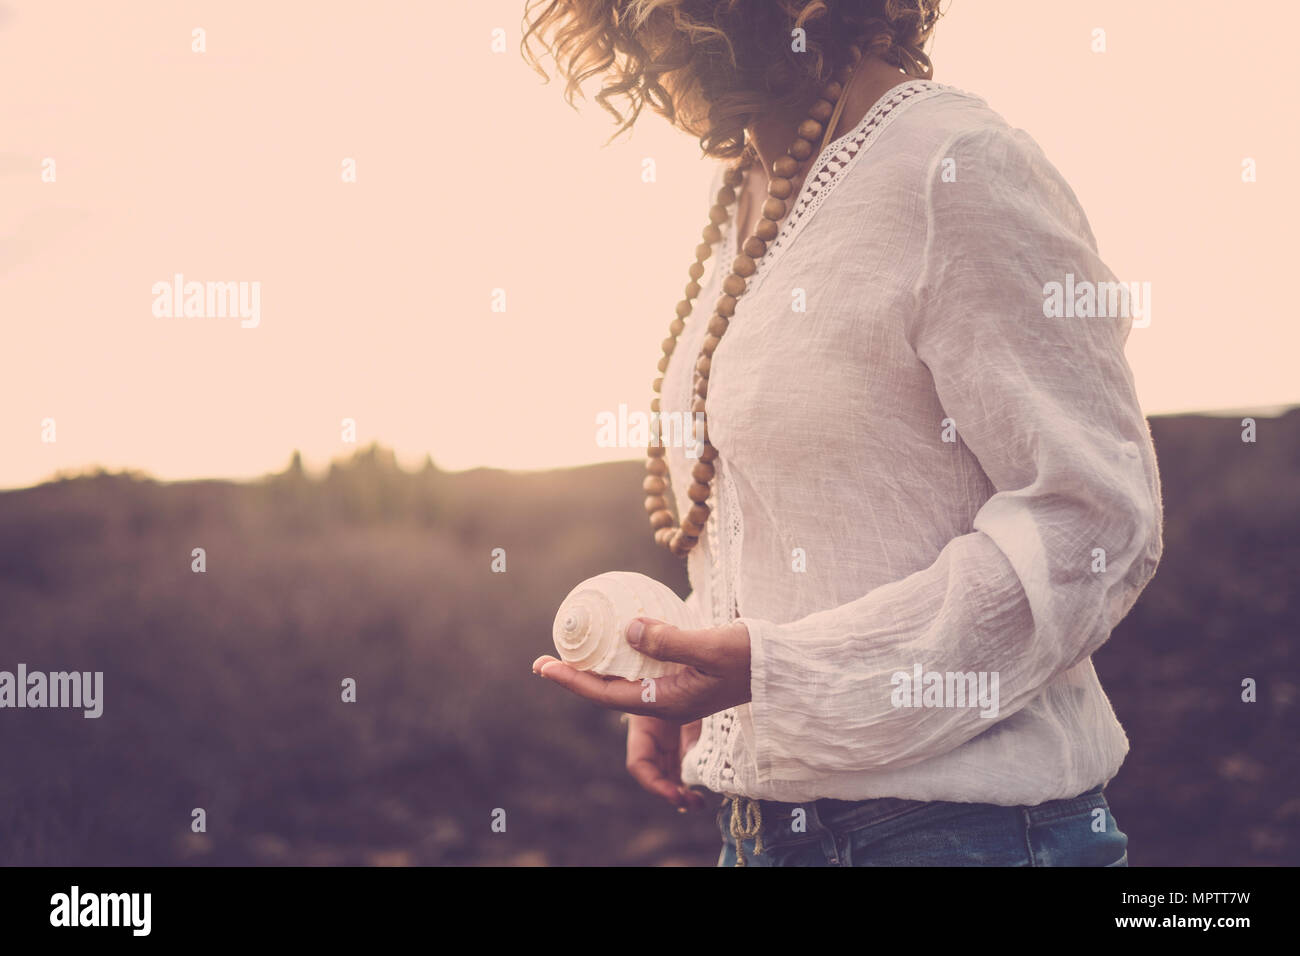 nice cut for beautiful middle age 40 years old model lady immersed in the nature of a desert. she take a shell on her hand for nature connection conce Stock Photo